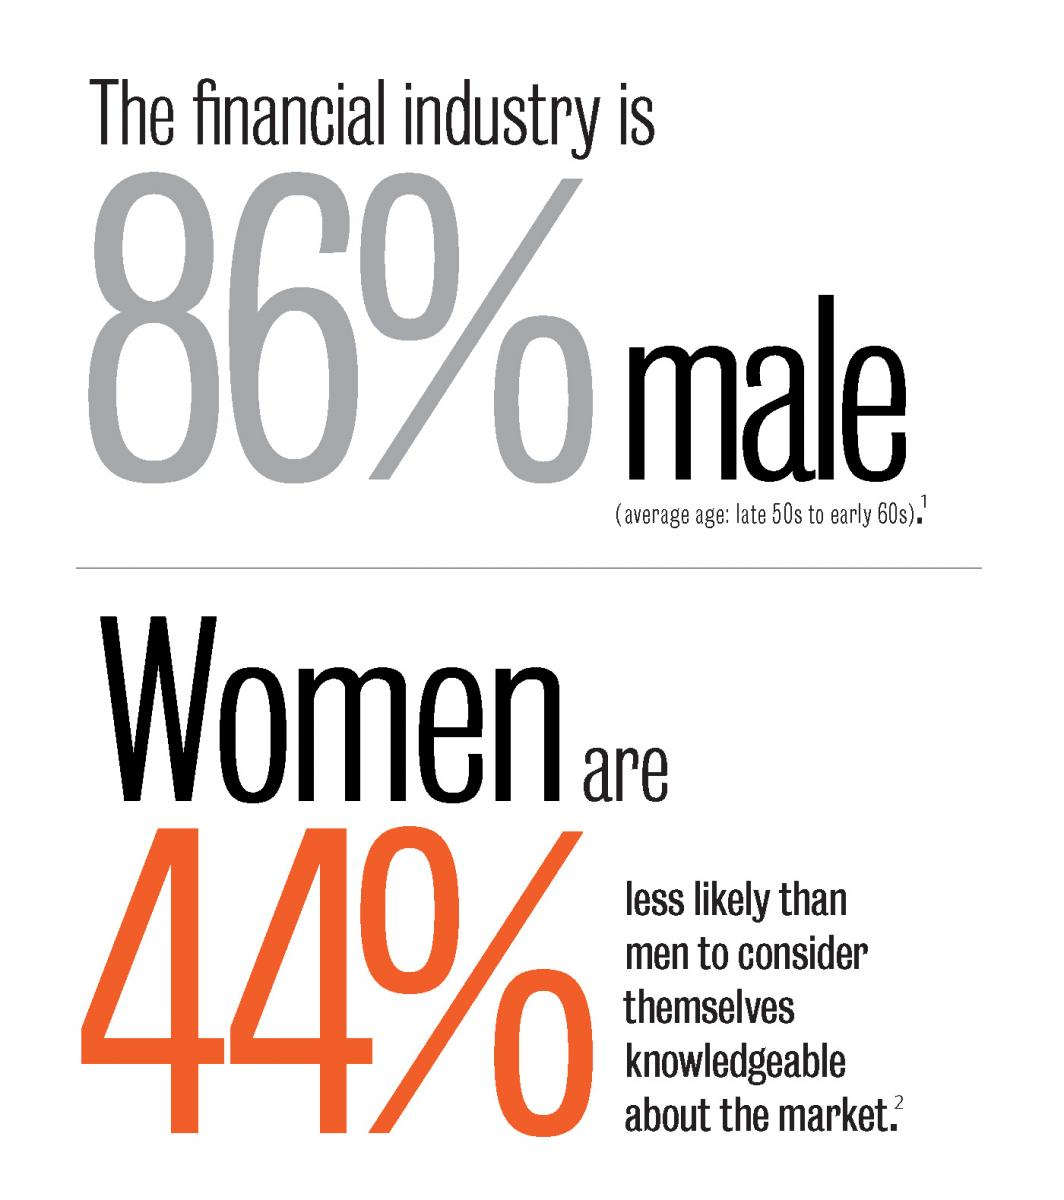 The financial industry is 86% male. Women are 44% less likely to consider themselves knowledgeable about the market.